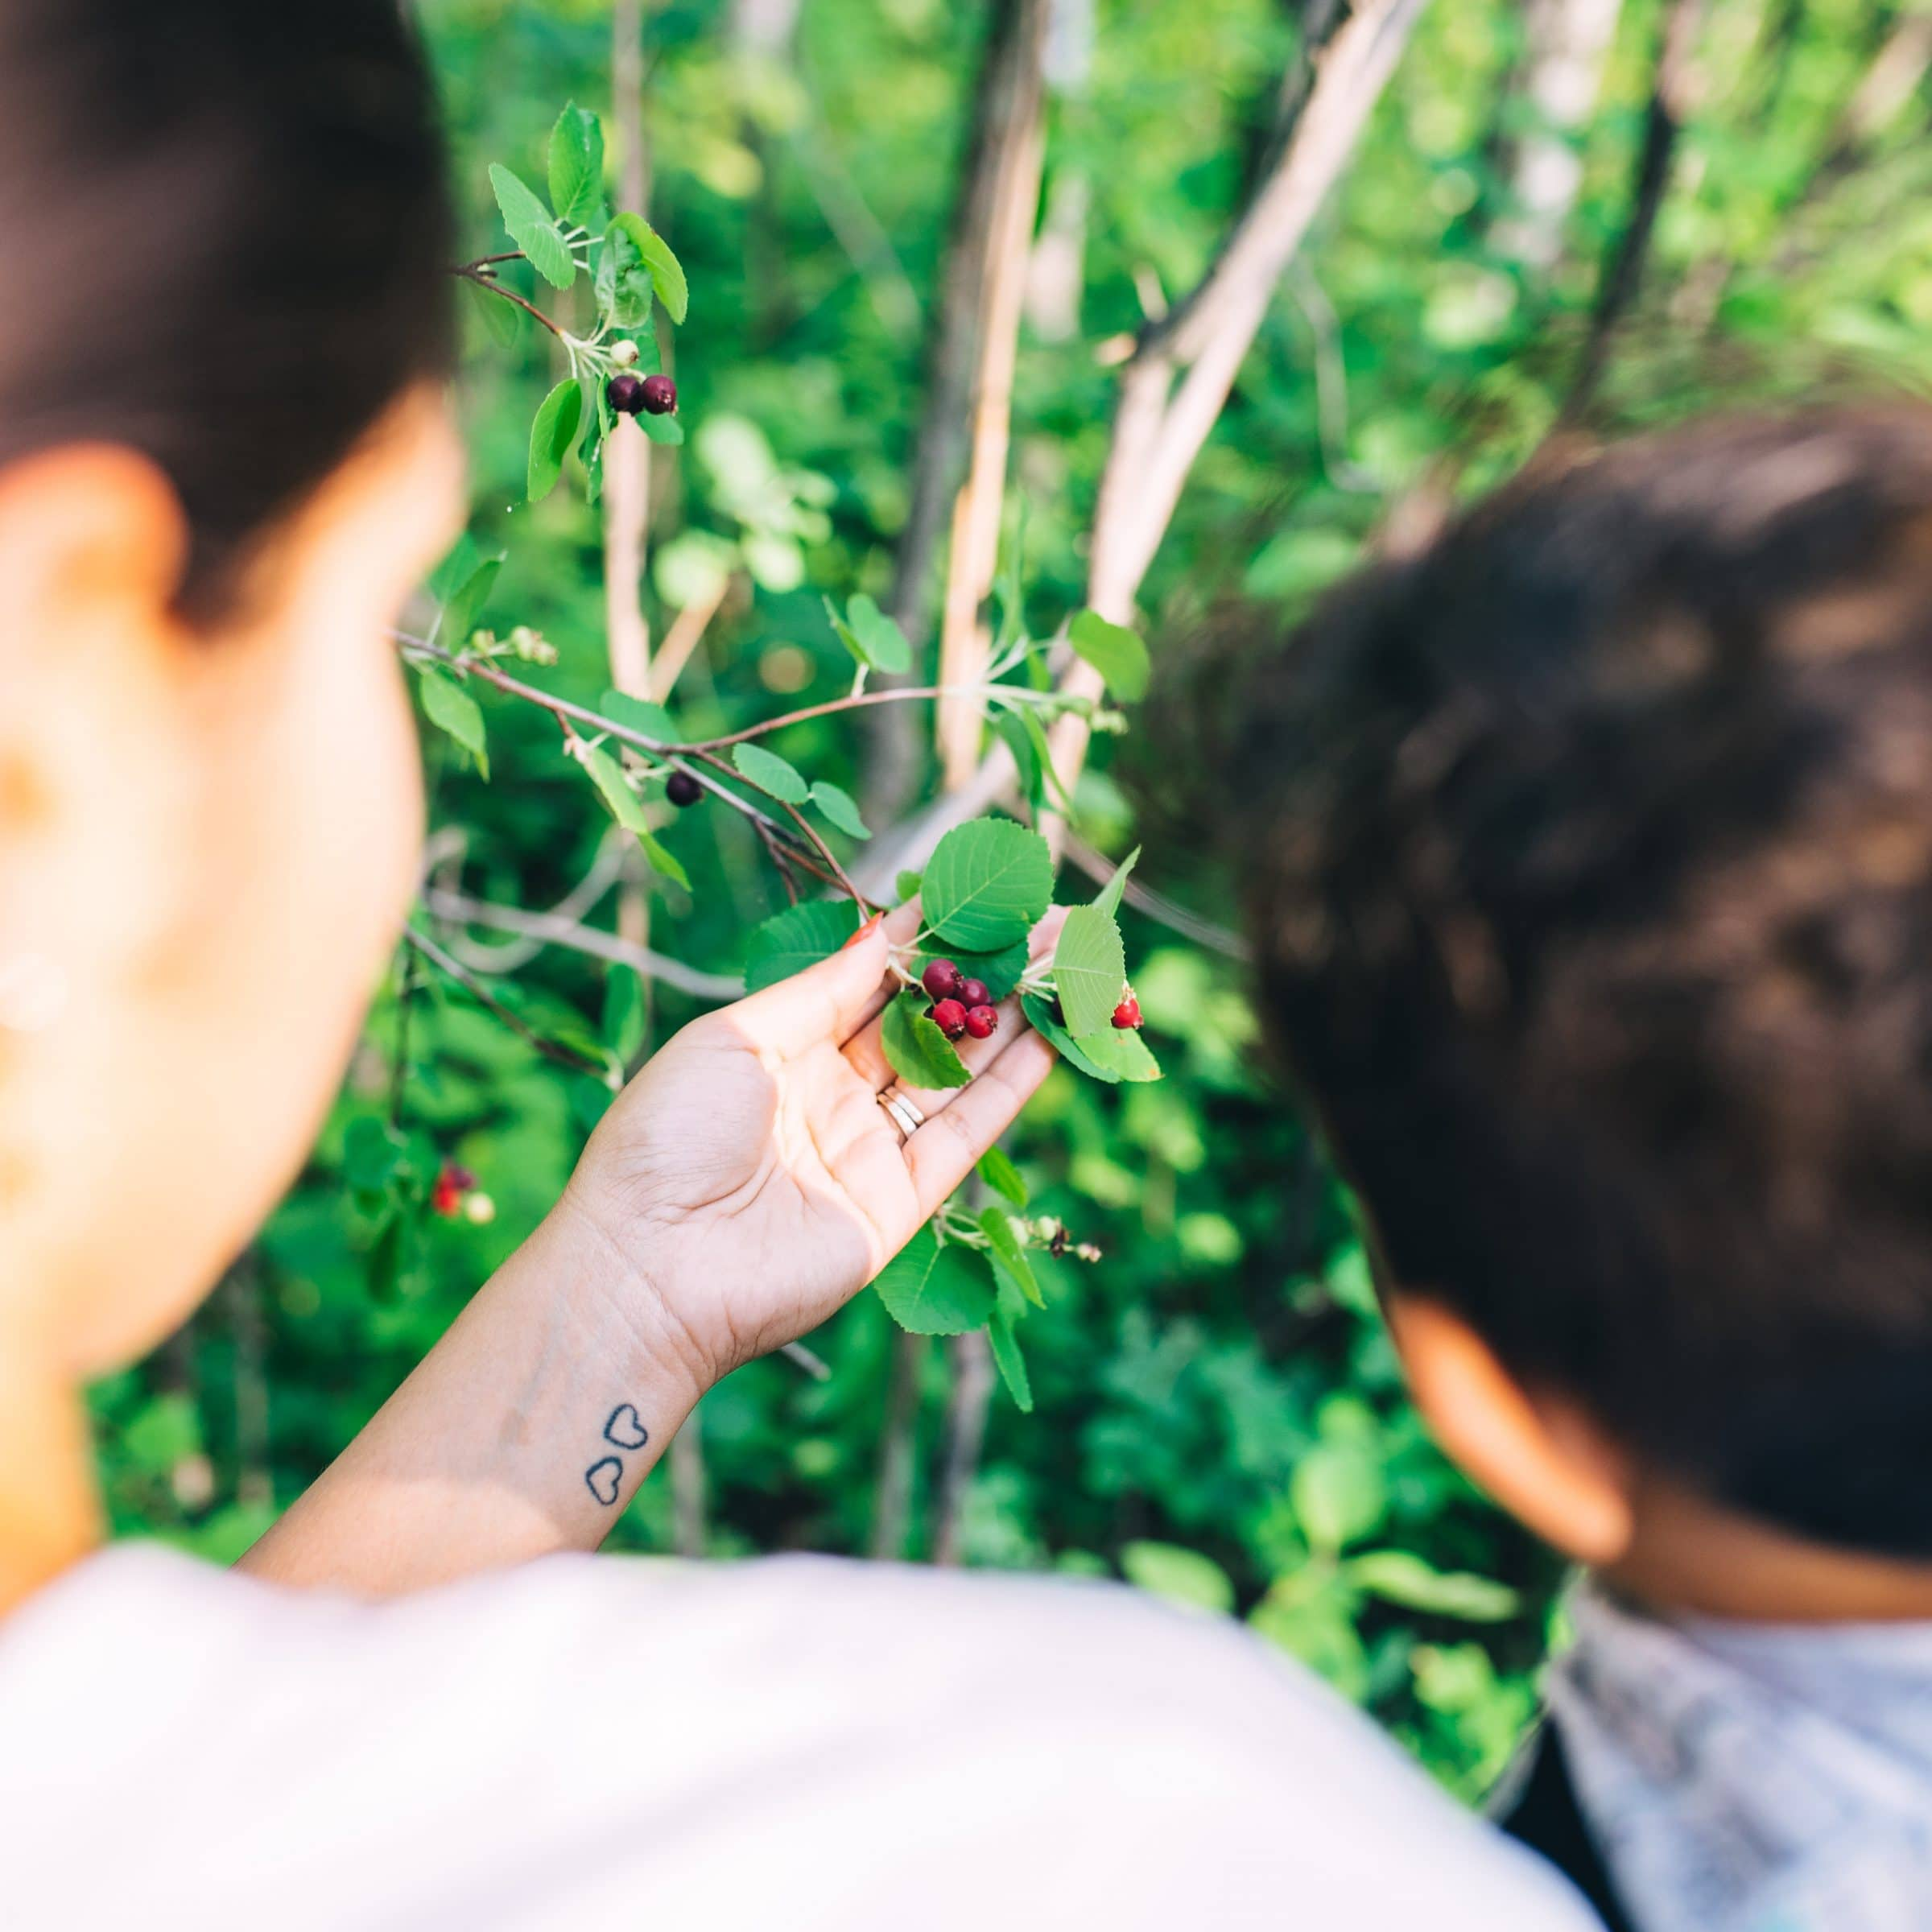 An adult and child closely examine a red berry on a green leafy plant.